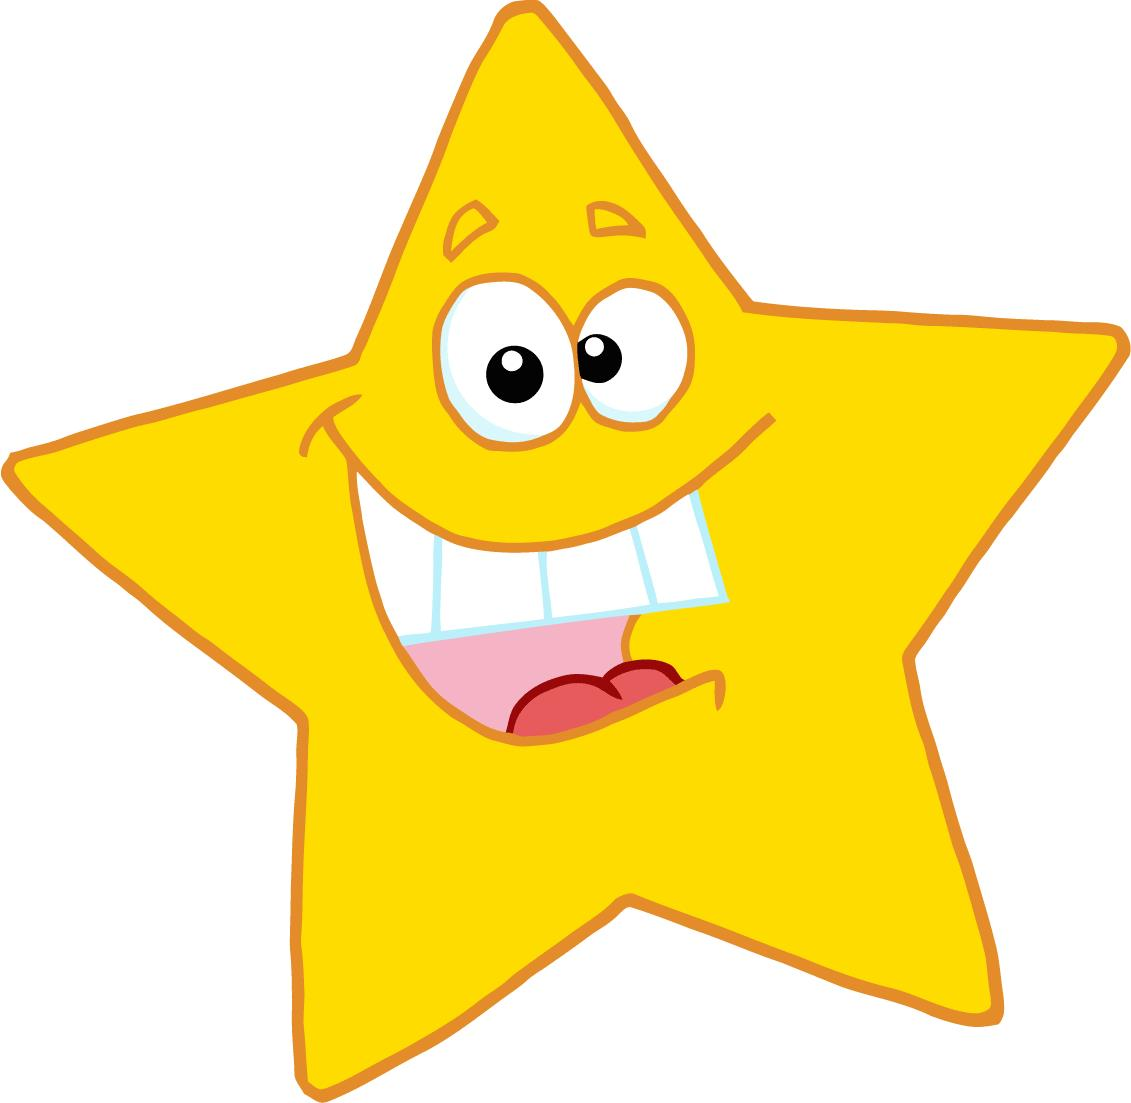 Star clip art images.